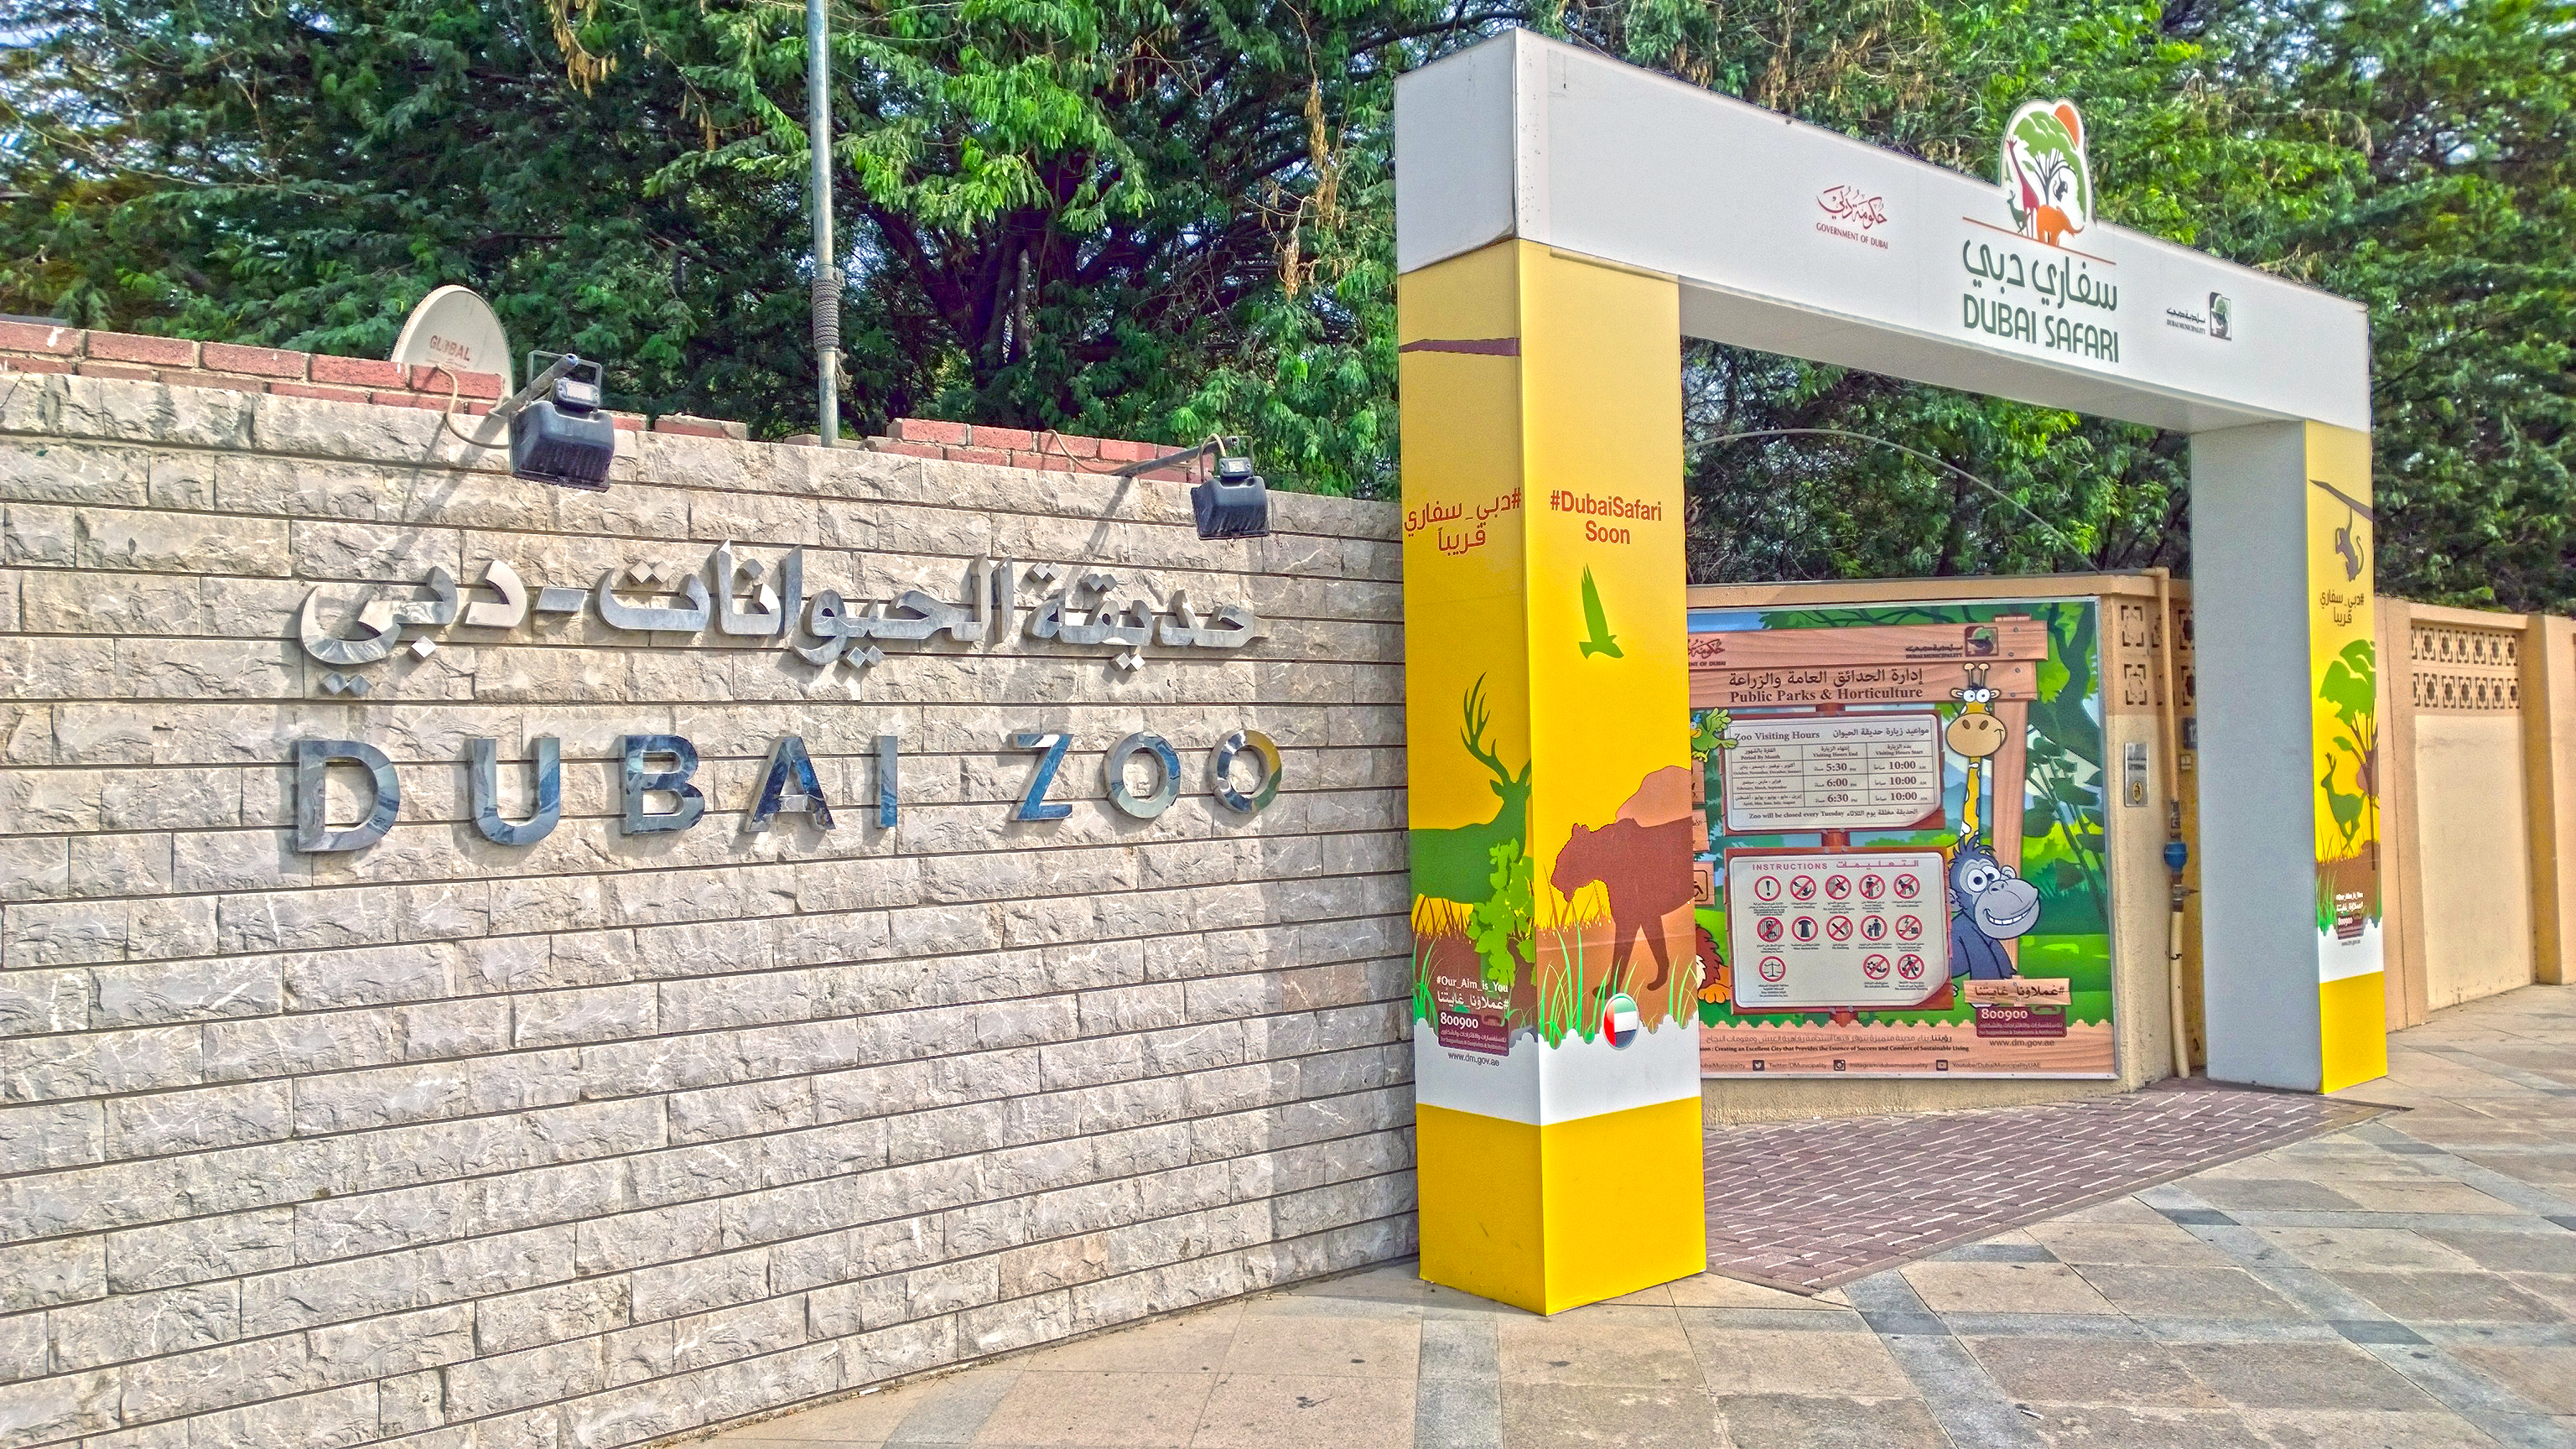 Dubai Zoo - Wikipedia